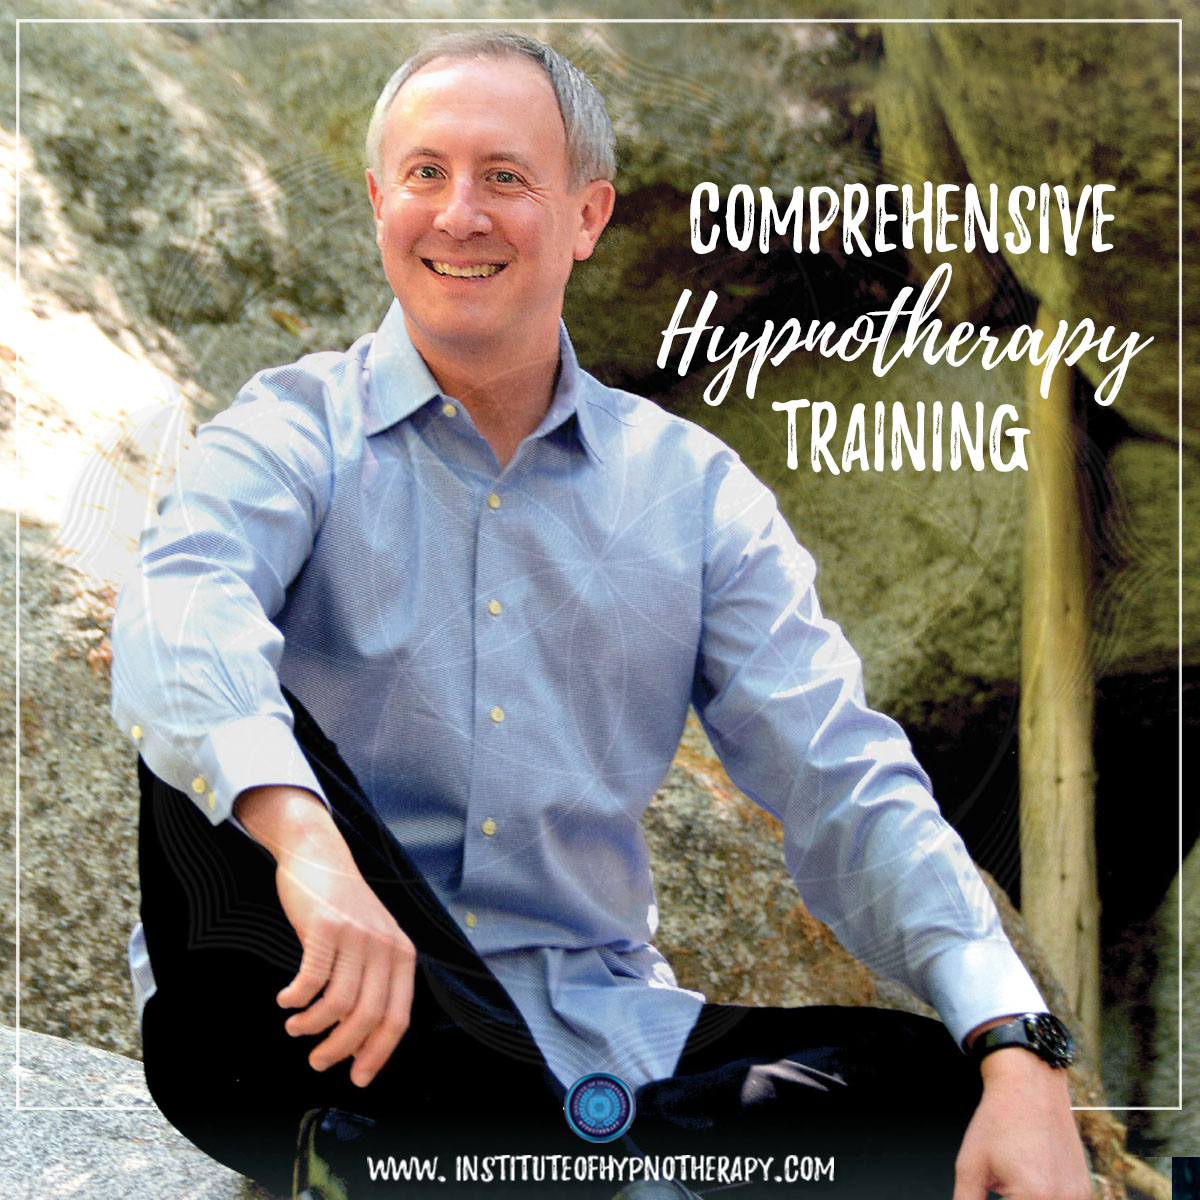 Hypnotherapy Training Orlando, Hollywood, Tampa, Florida, Raleigh, North Carolina & Crestline, California Jan 2021